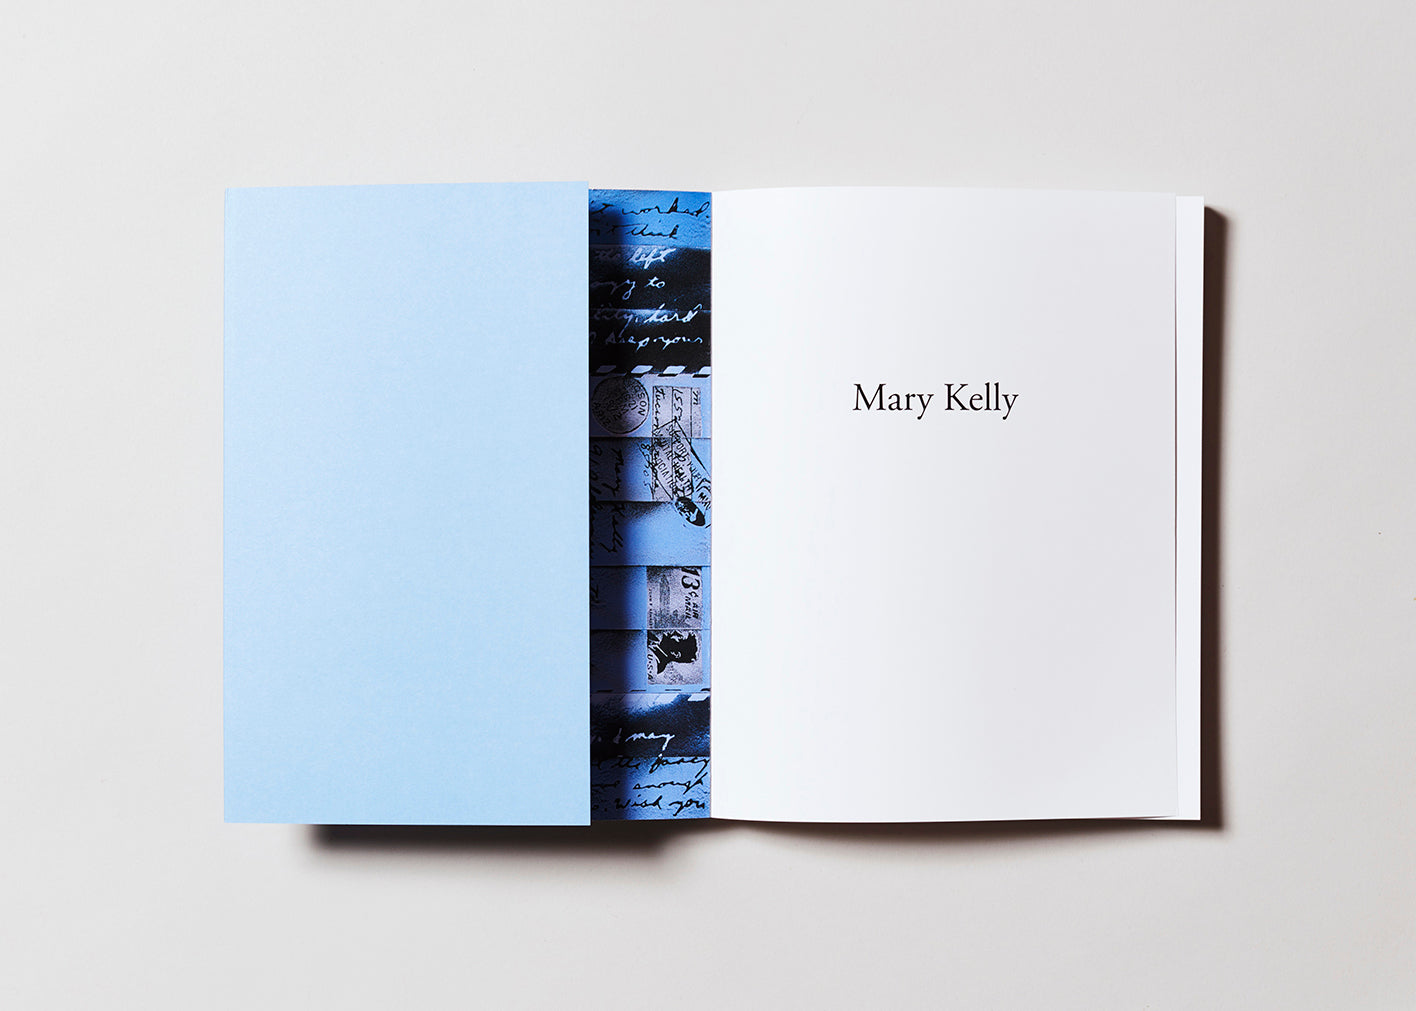 Mary Kelly artist catalogue published by Mitchell-Innes and Nash, designed by Pacific Books